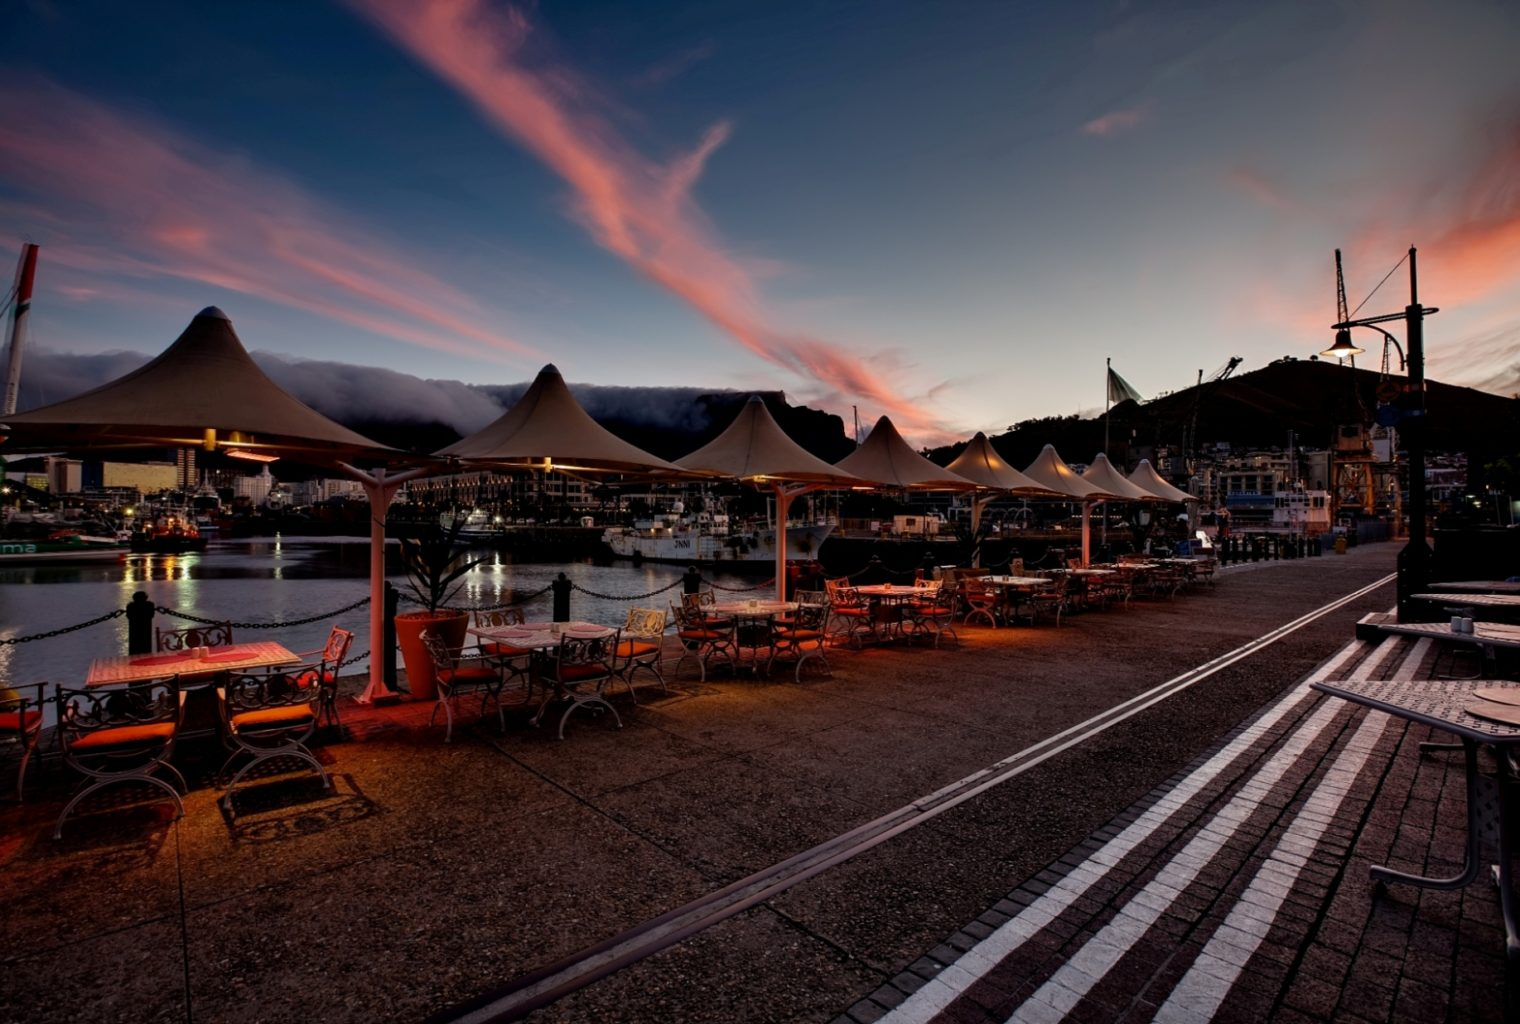 Victoria and Alfred Hotel South Africa Sunset